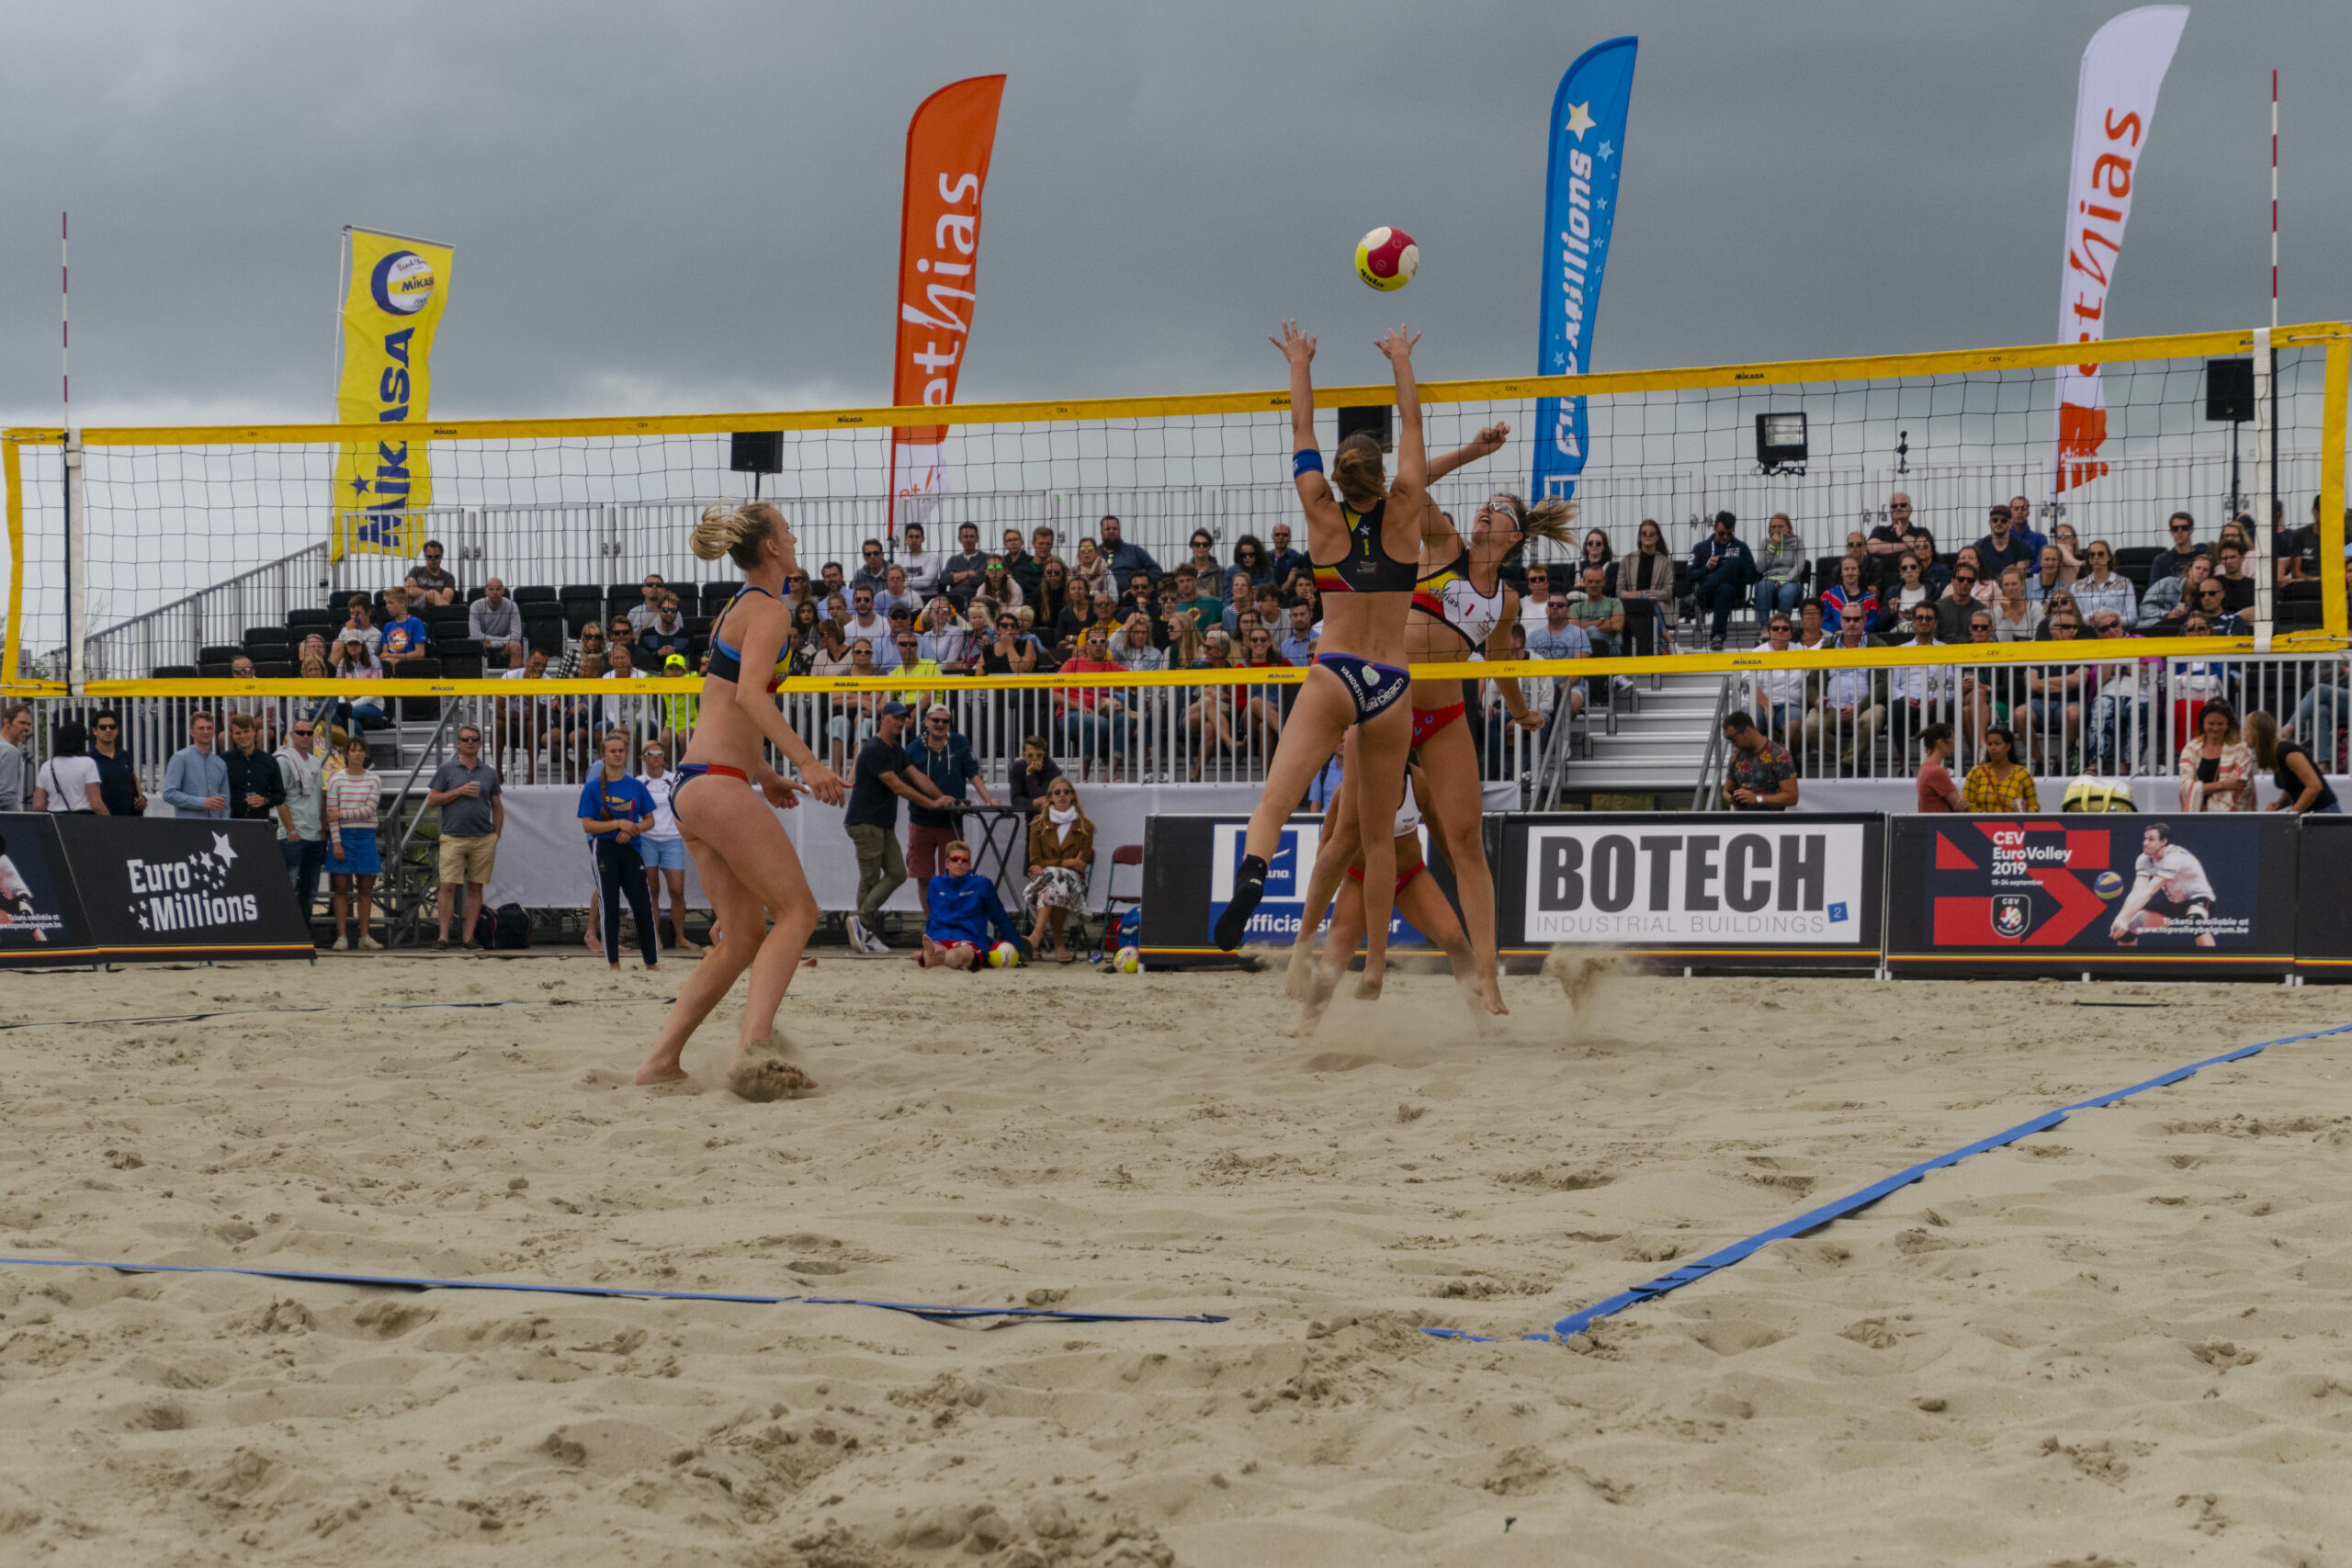 Beach-volley-25-scaled.jpg